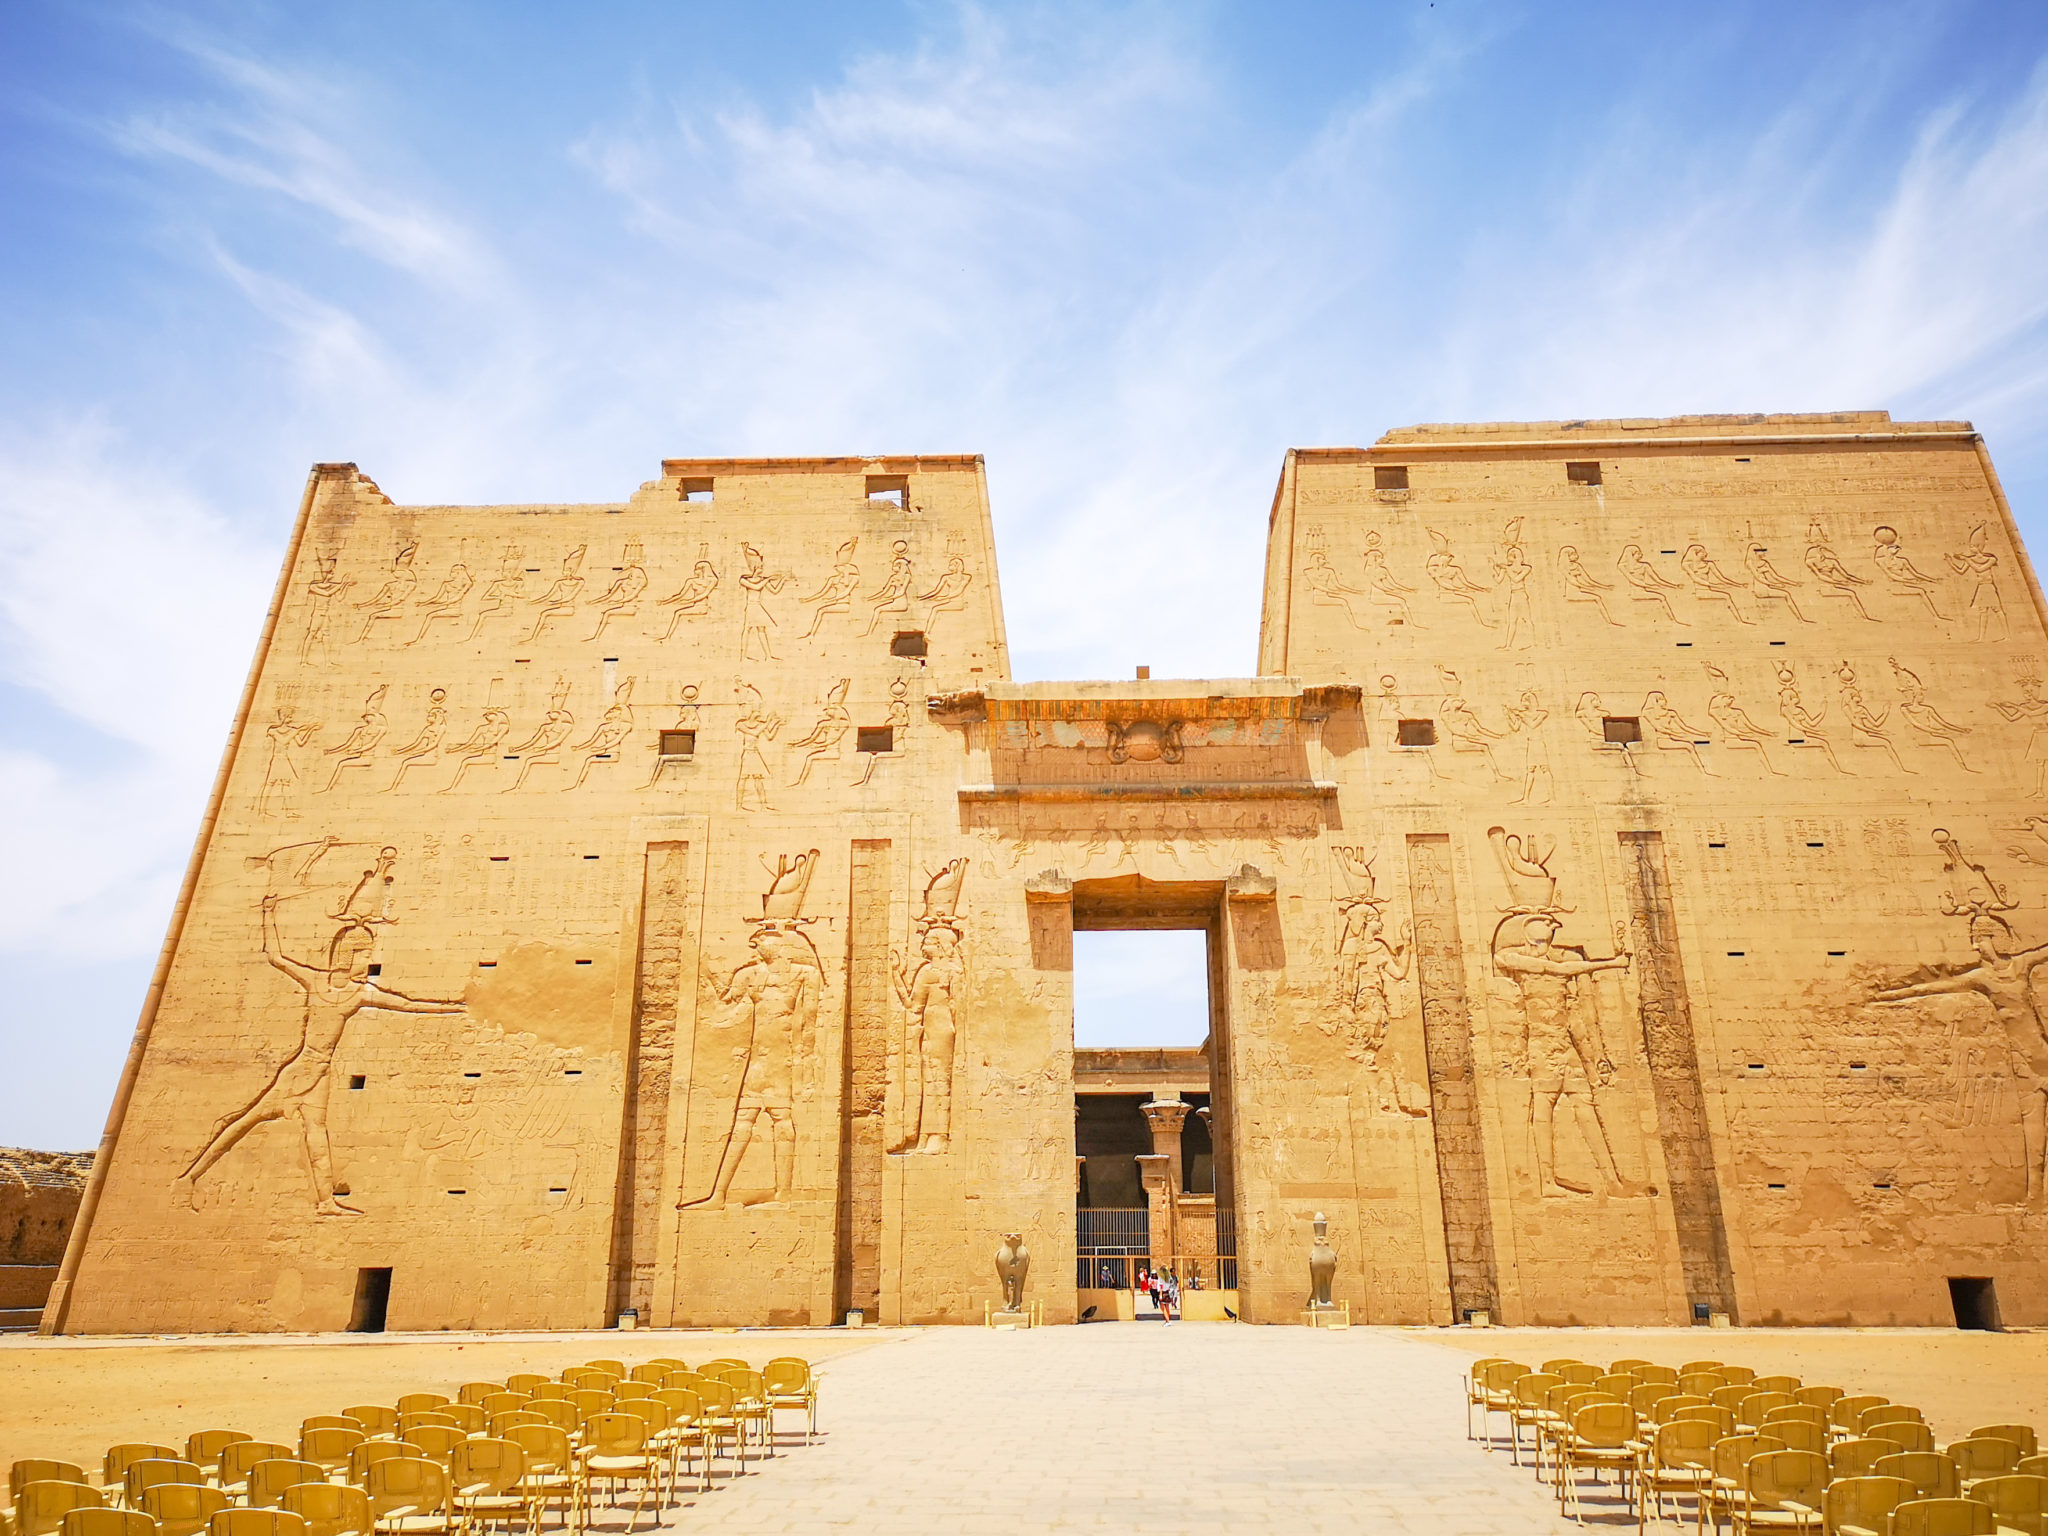 Best egypt travel guide, the temple of edfu is so well preserved and the hieroglyphs are amazing